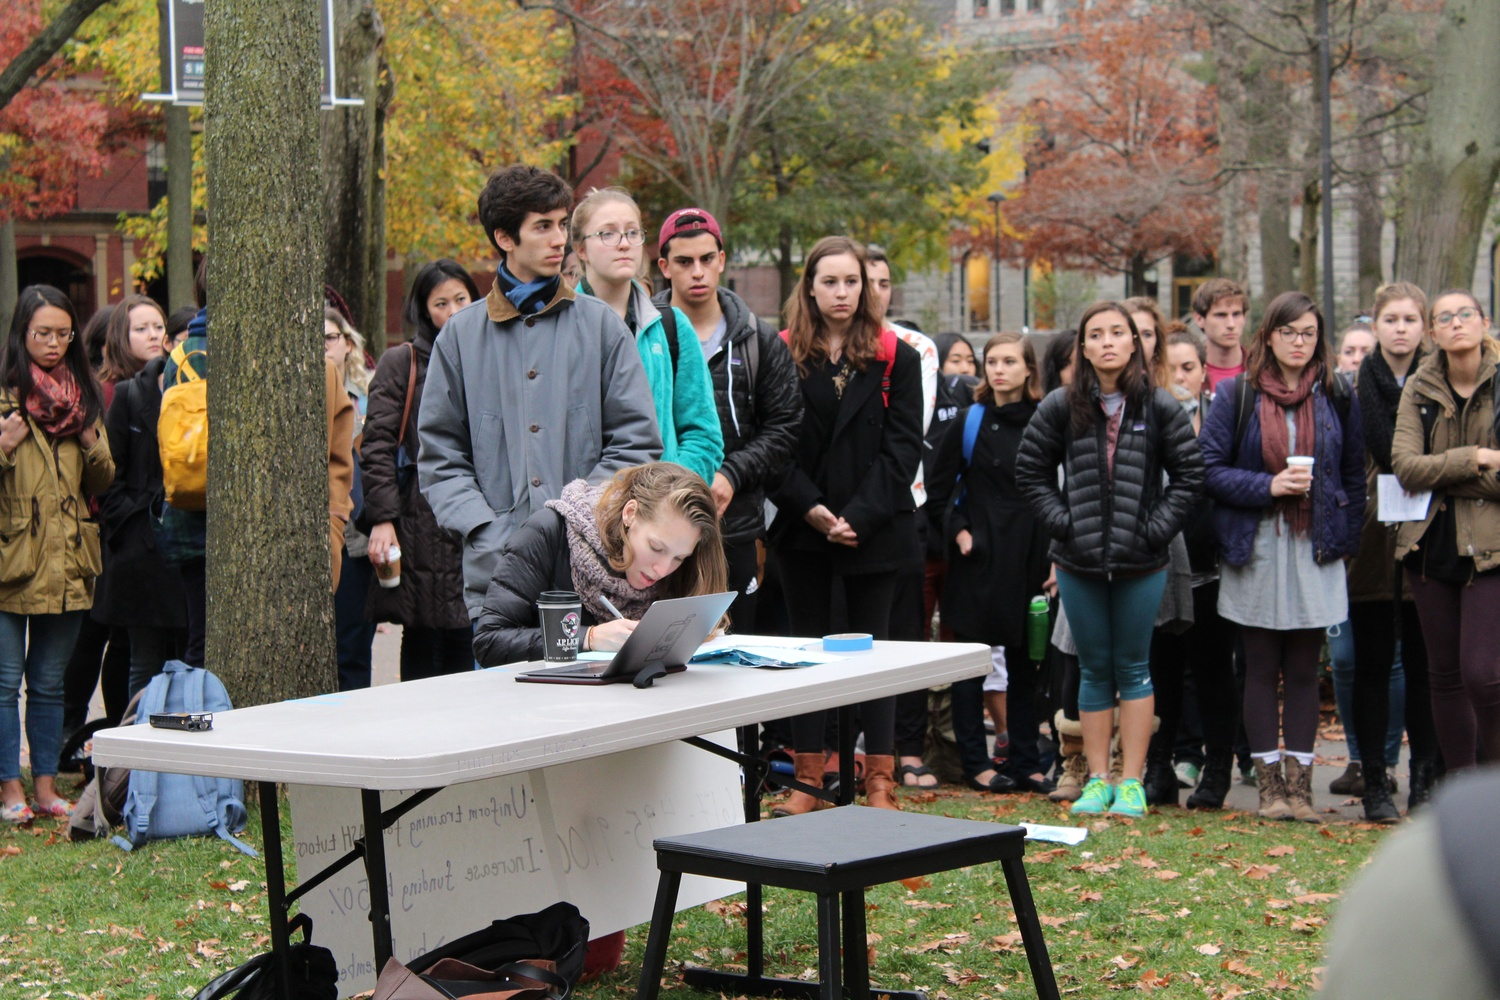 Students line up to sign a petition in support of demands to overhaul Harvard's sexual assault prevention programs at a rally outside Massachusetts Hall on Thursday.Students said Harvard should require mandatory yearly sexual assault training for undergraduates and additional training for sexual violence response tutors in addition to increasing funding for the Office of Sexual Assault Prevention and Response.